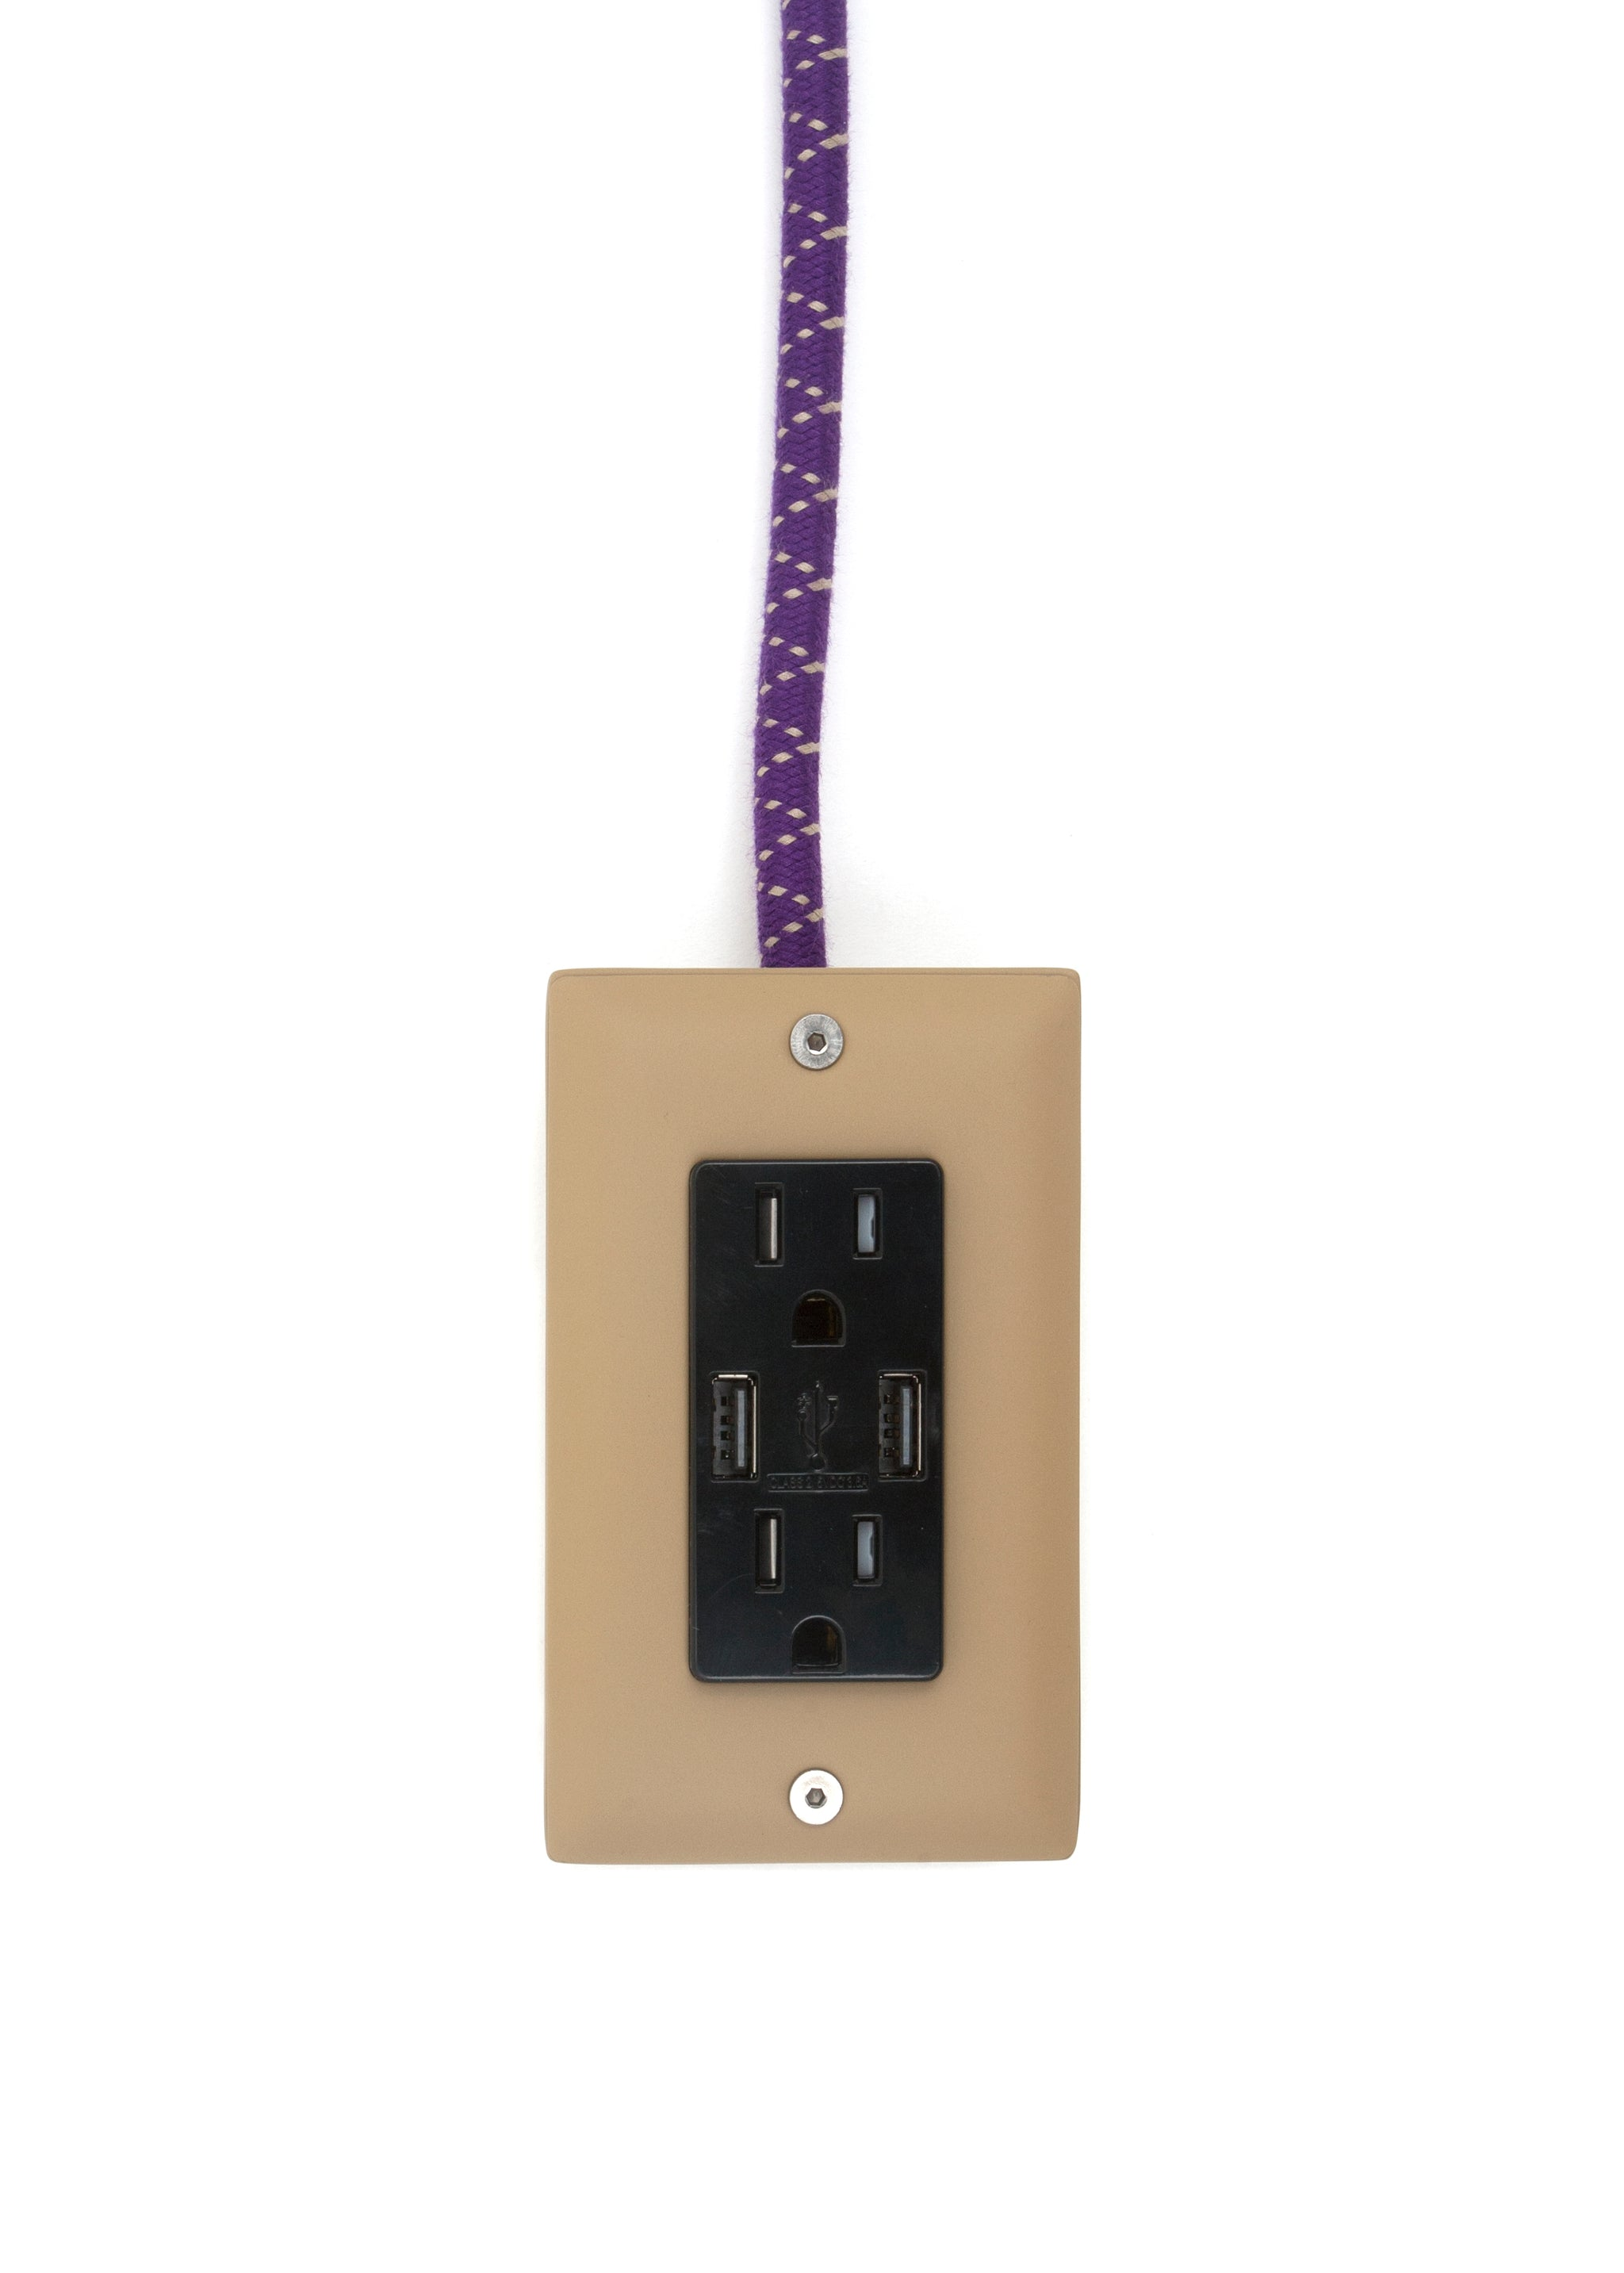 The First Smart Chip Extension Cord - 12' Extō Dual-USB, Dual-Outlet - Ouija Beige